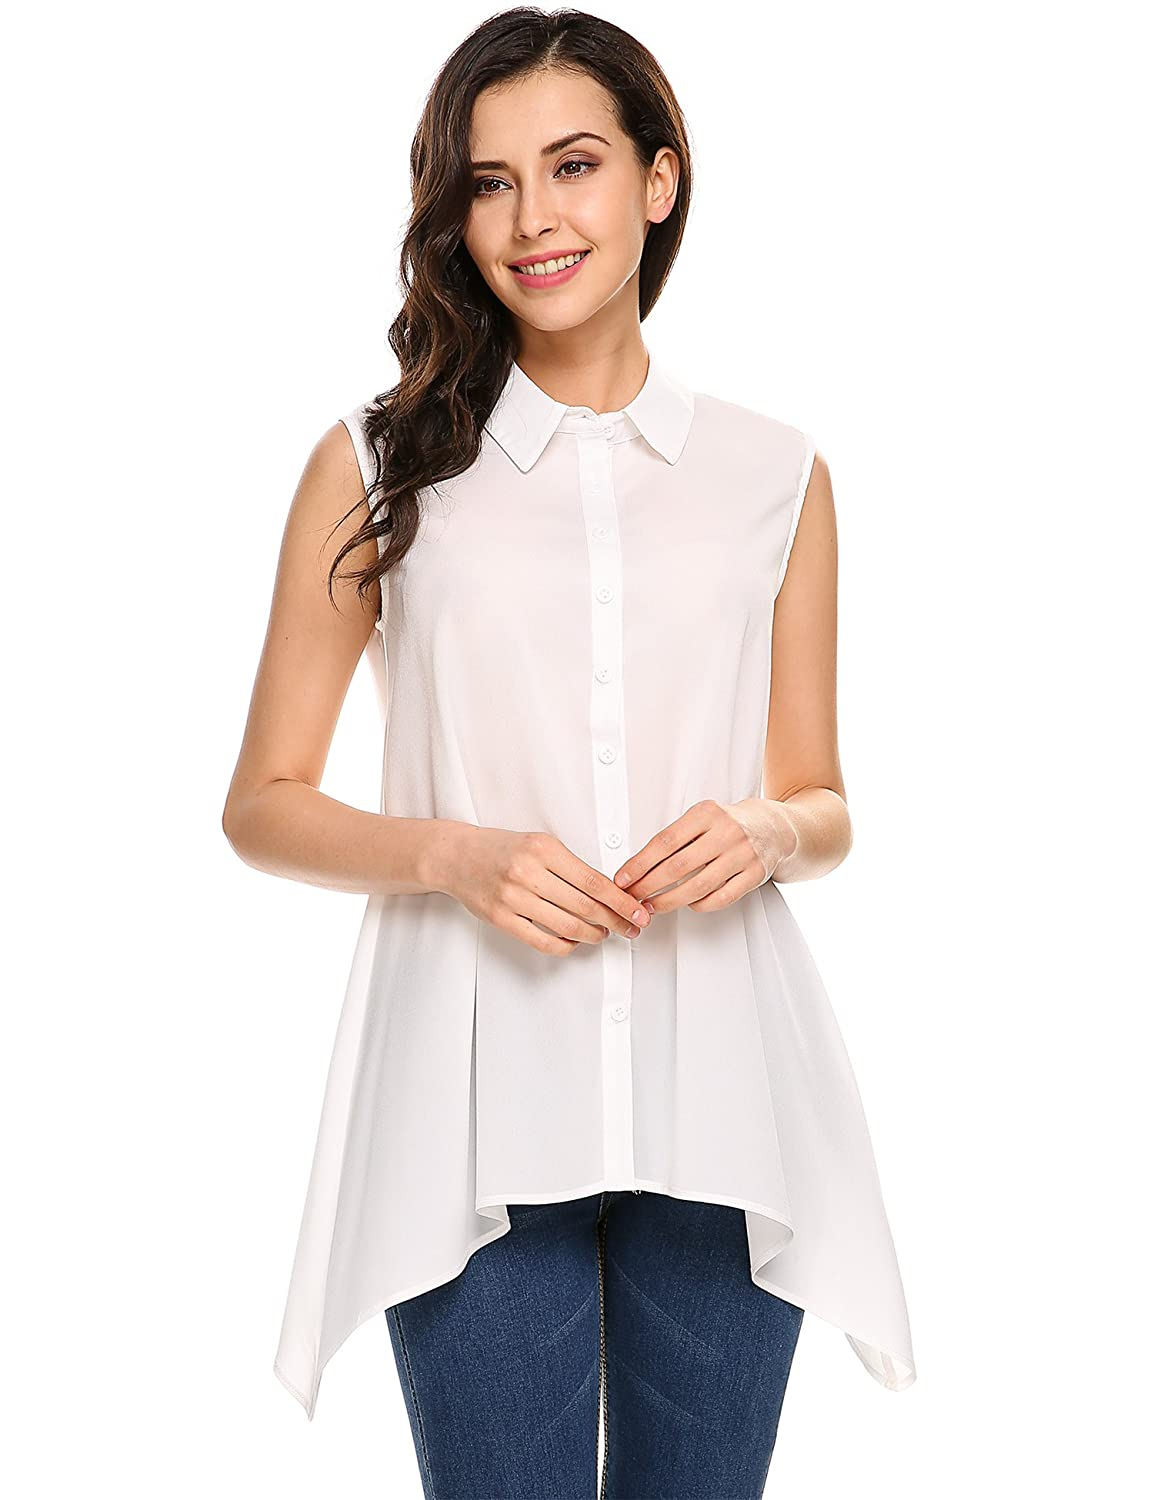 a826e10a516a02 Meaneor Women Casual Chiffon Sleeveless Button Down Shirts Summer Loose  Blouse Tops at Amazon Women s Clothing store